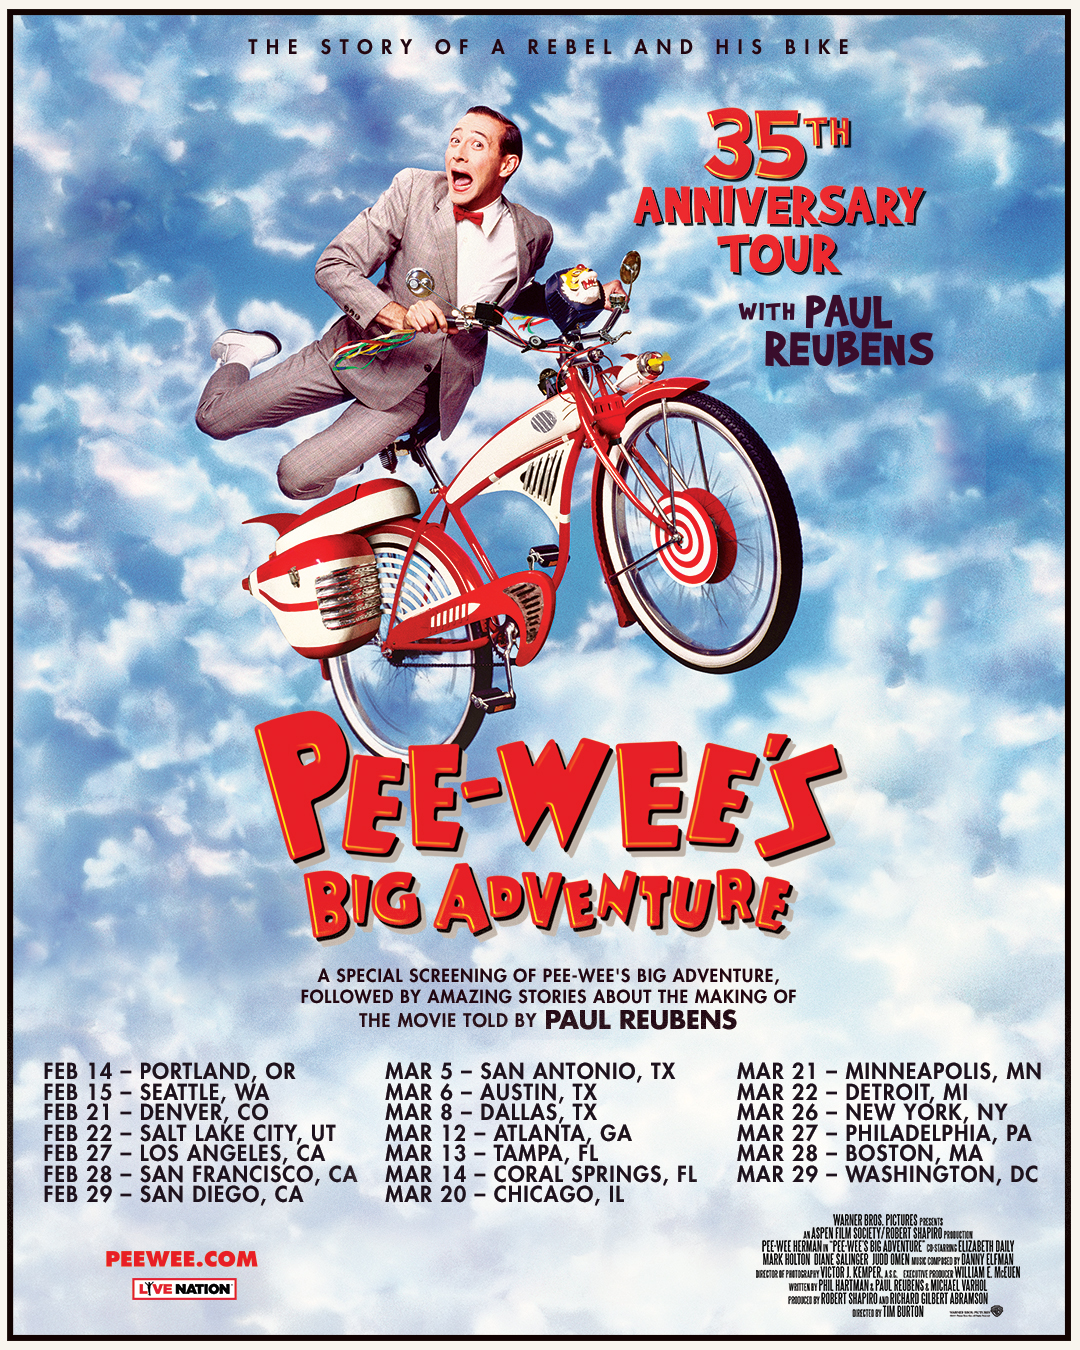 Pee-wee's Big Adventure 35th Anniversary Tour